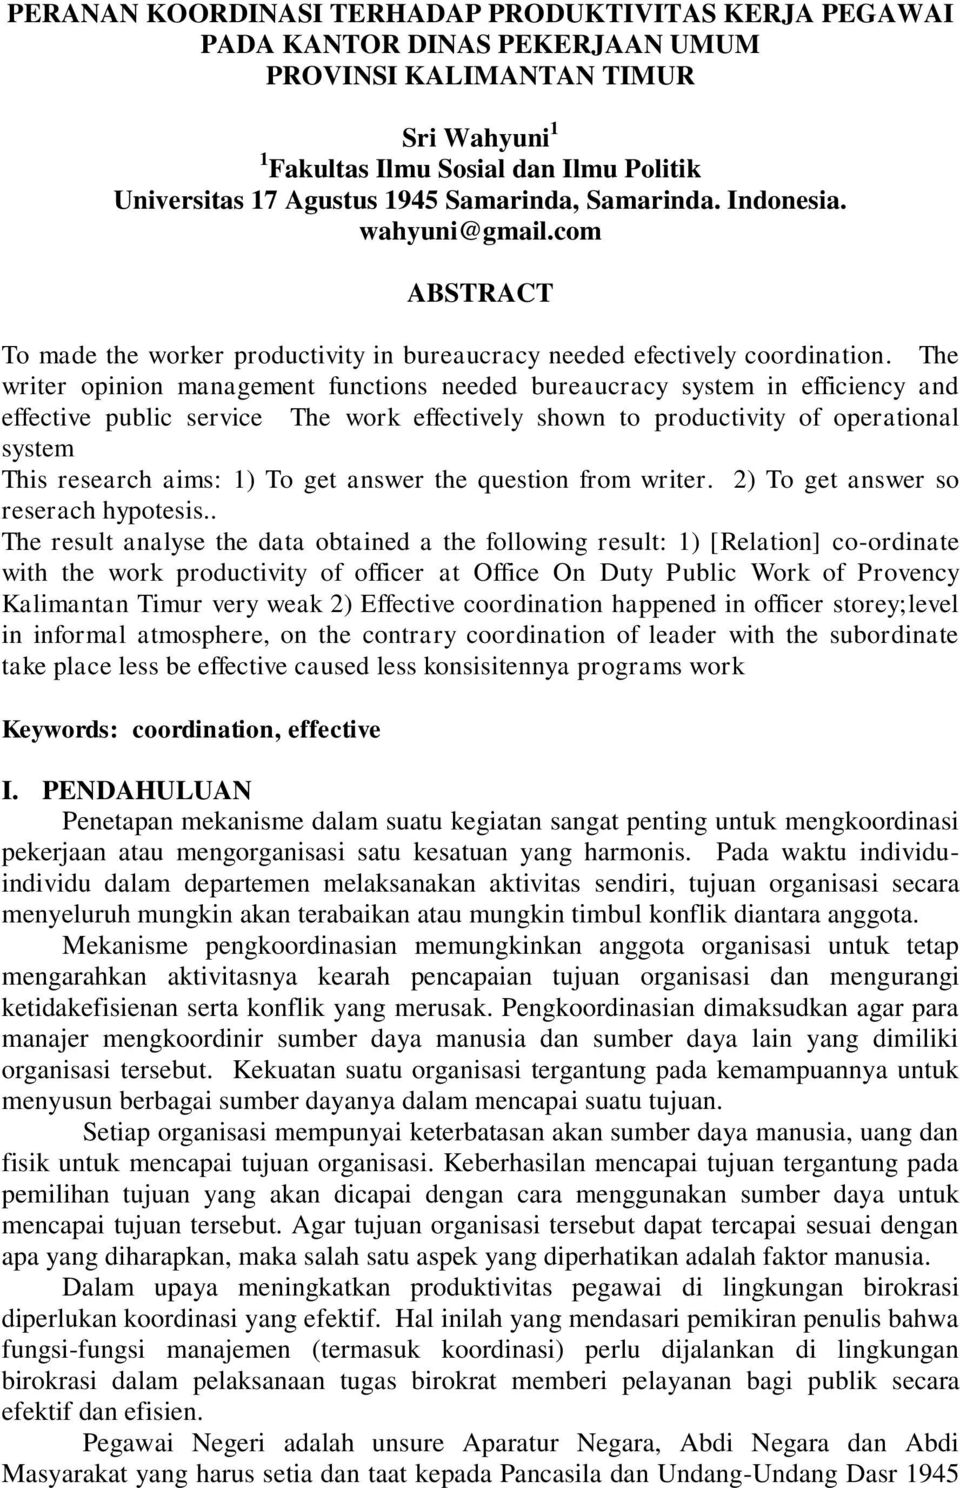 The writer opinion management functions needed bureaucracy system in efficiency and effective public service The work effectively shown to productivity of operational system This research aims: 1) To